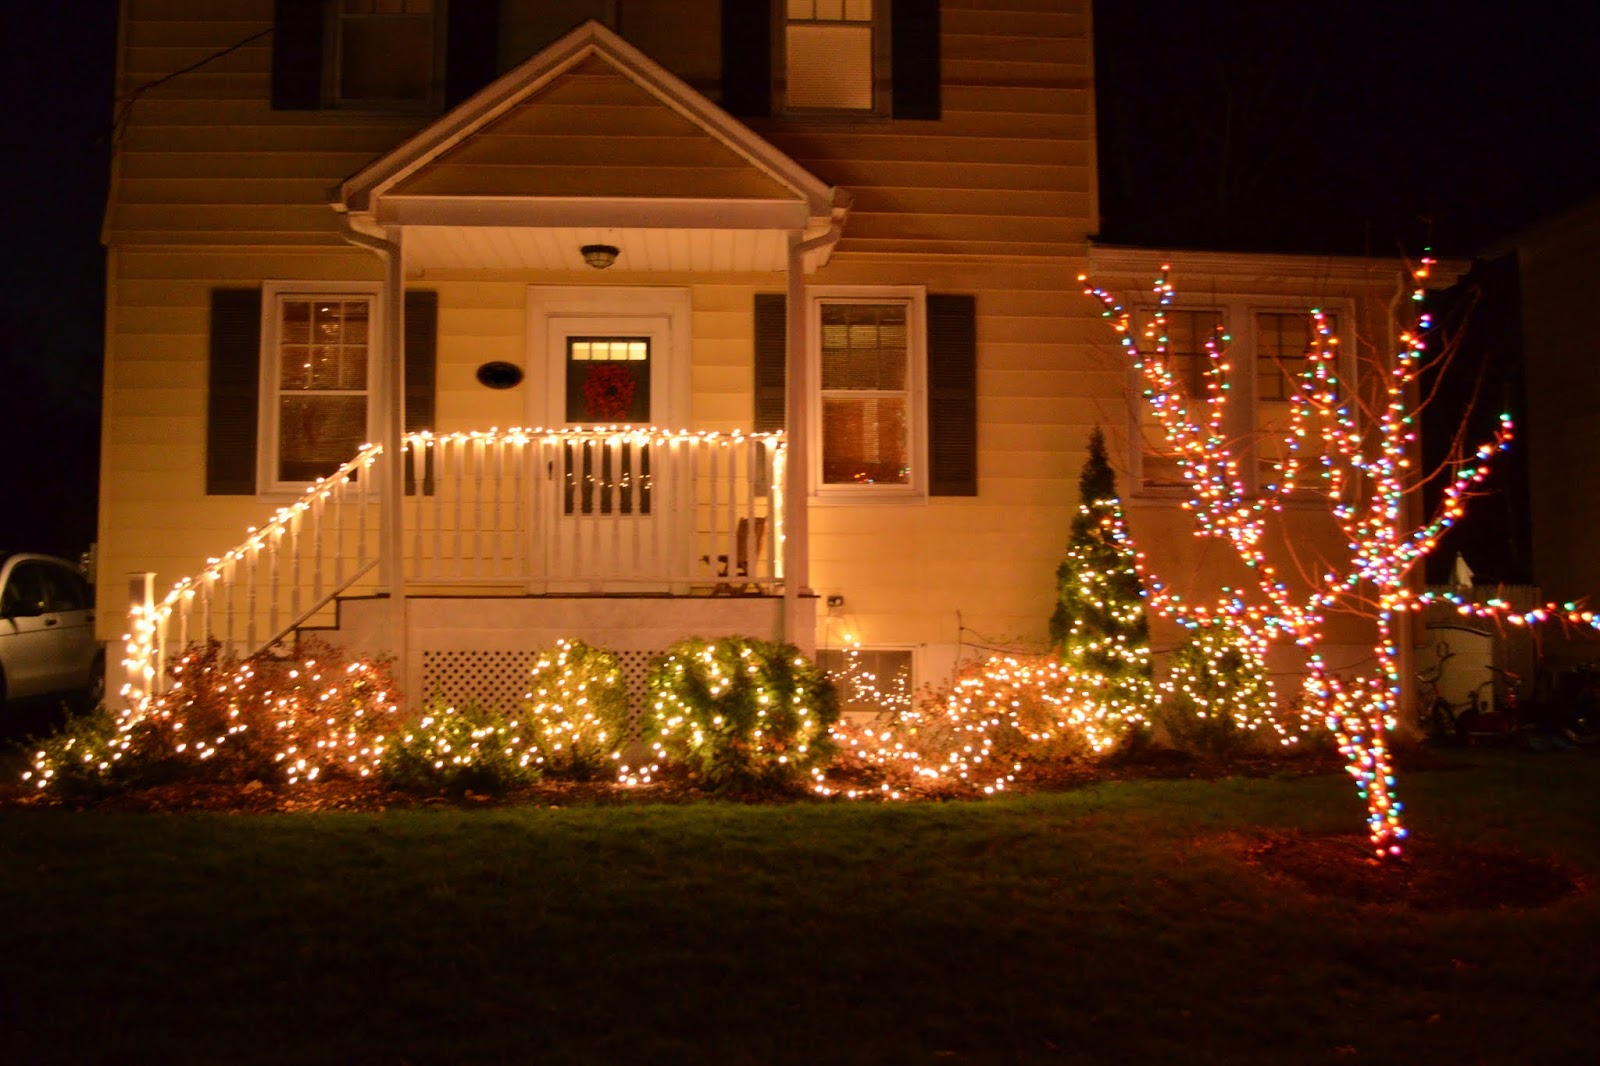 White And Colored Christmas Lights | Zef Jam